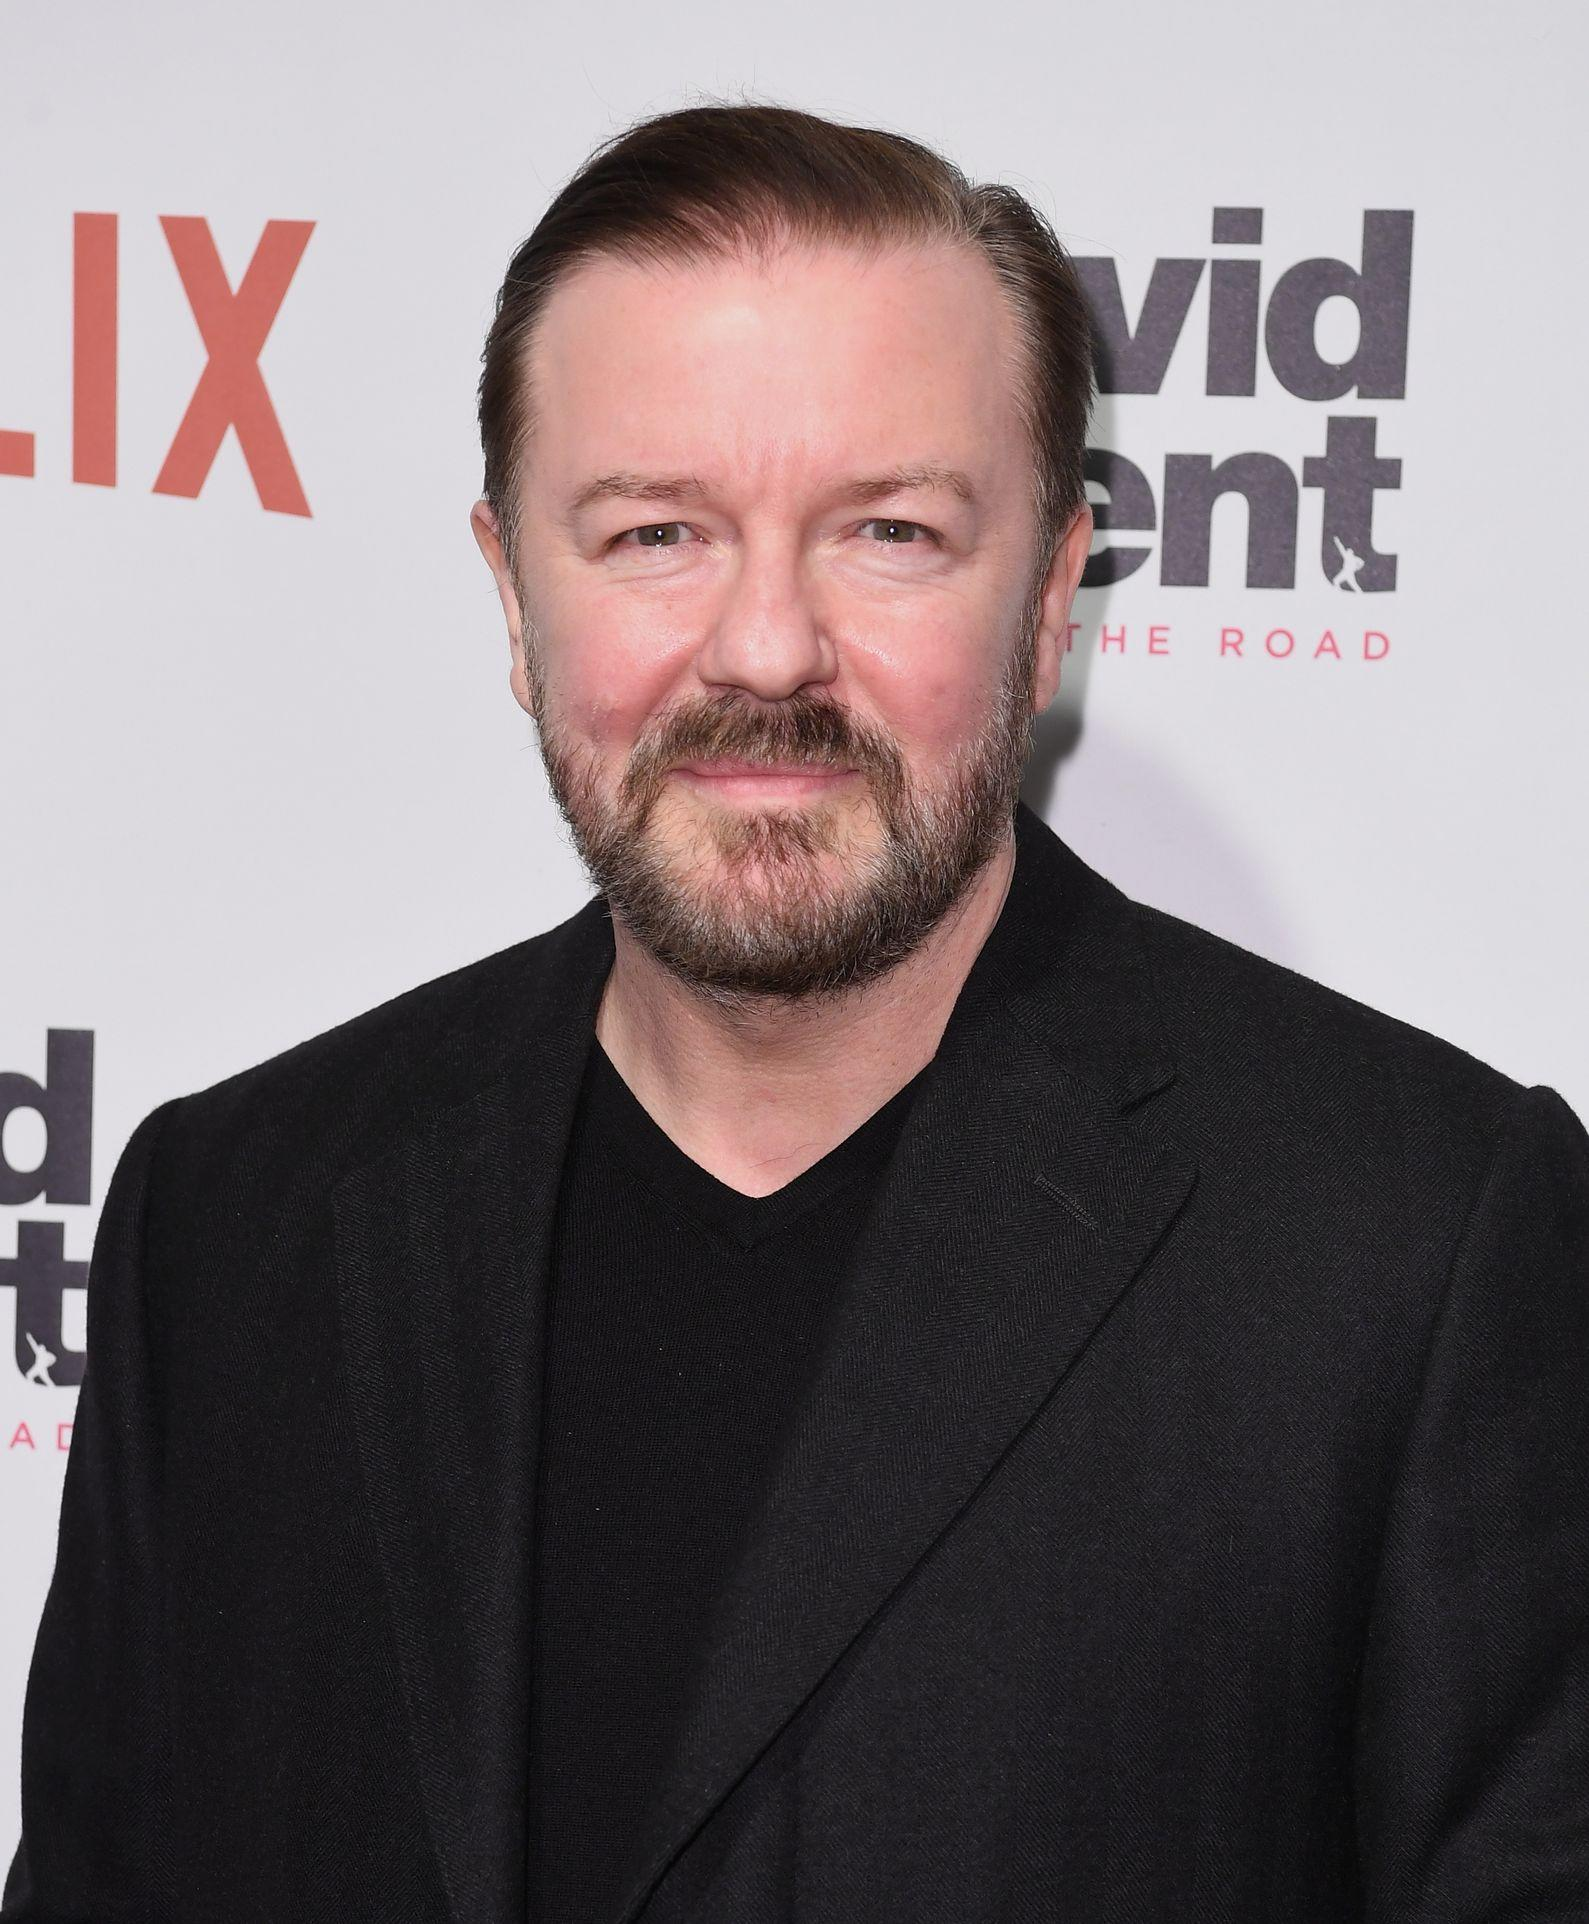 Ricky Gervais brings up Jeffrey Epstein in Golden Globes monologue